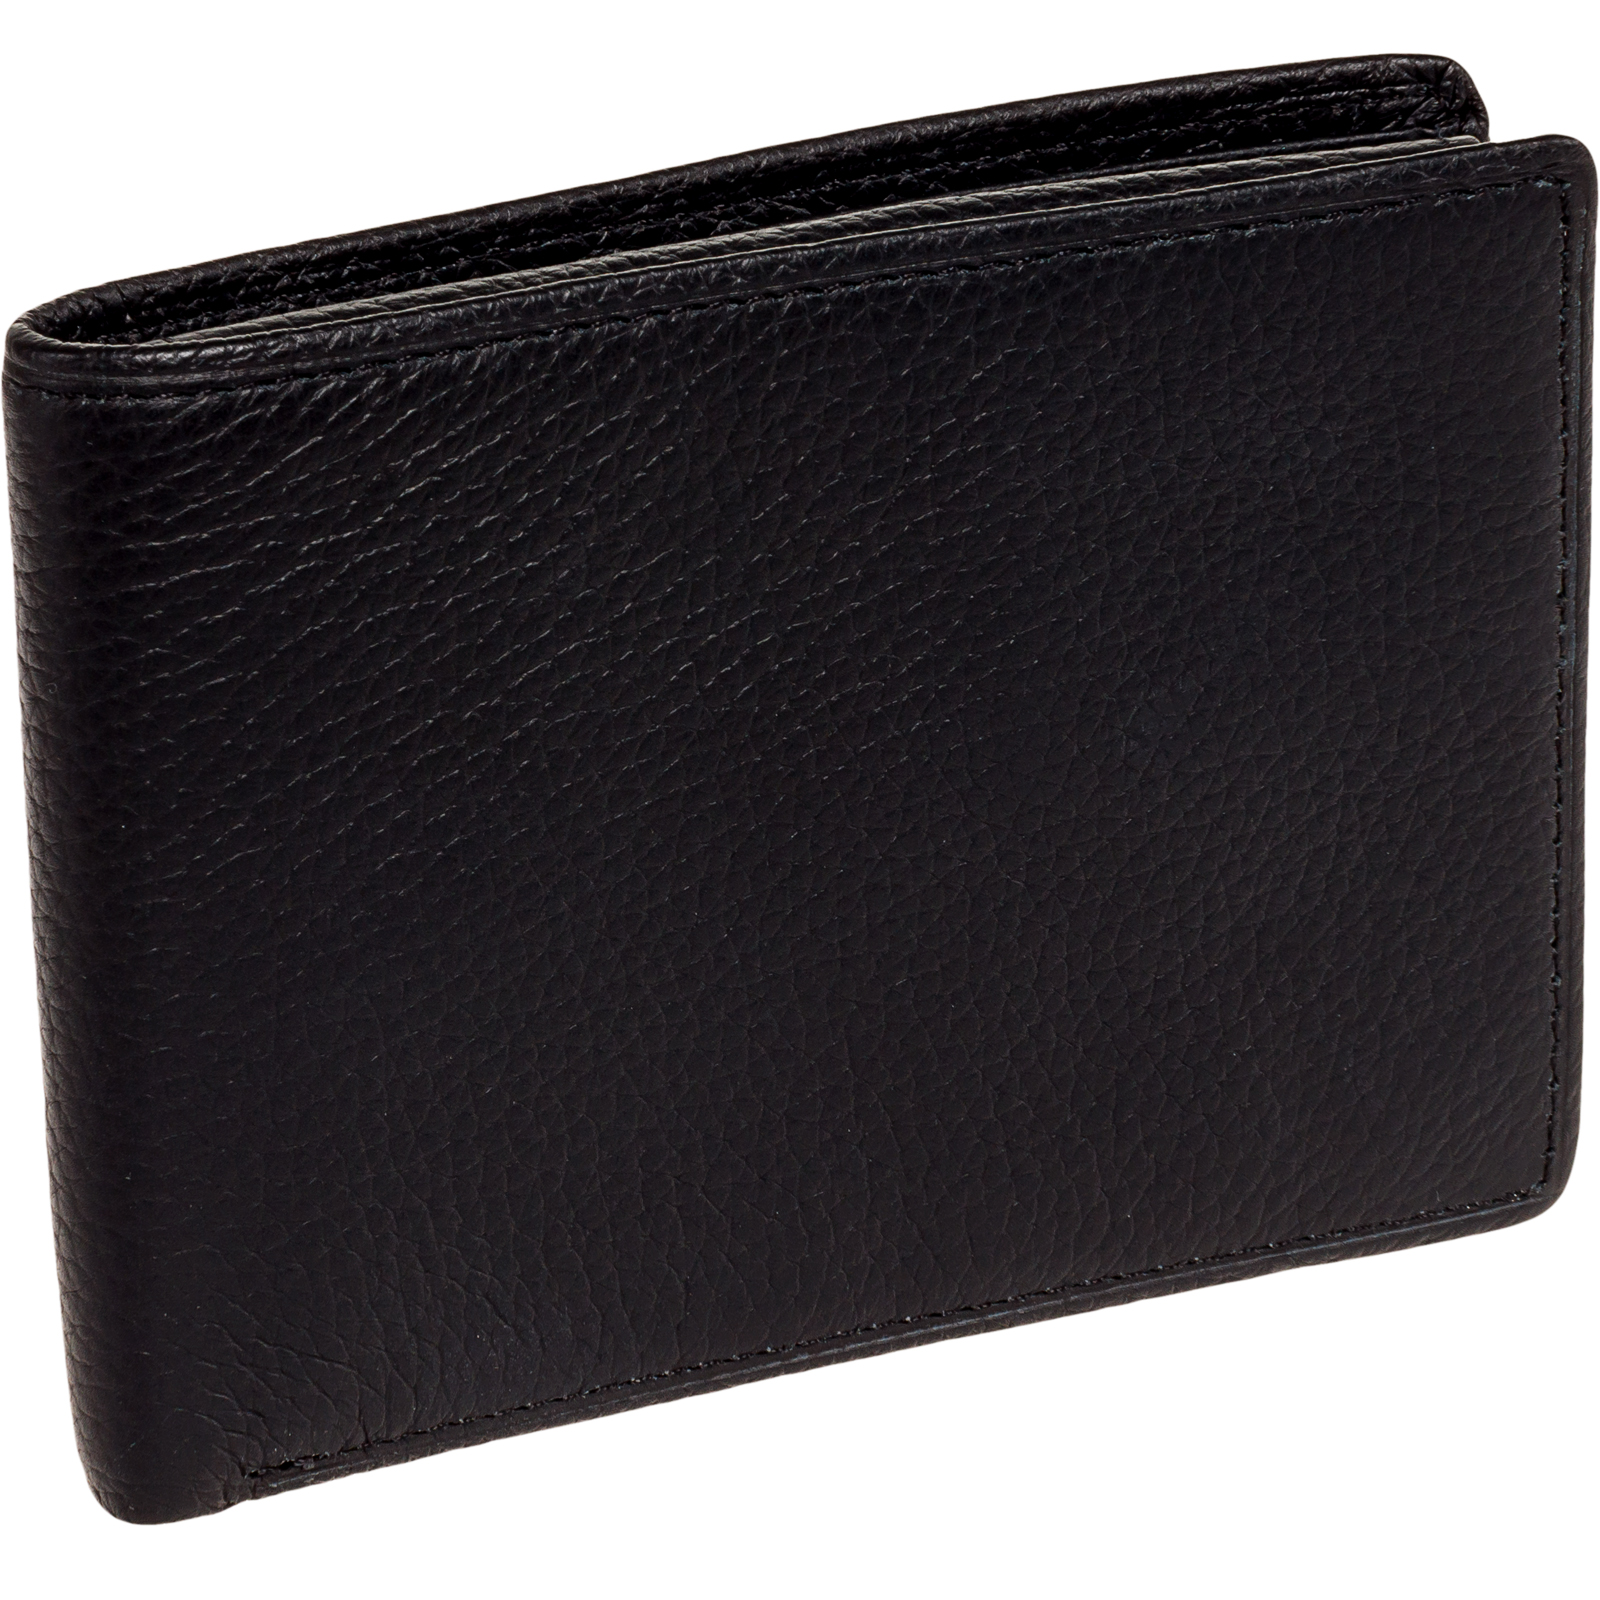 ROSS MICHAELS NEW Men Black Genuine Leather Logo Embossed Billfold Bifold Wallet